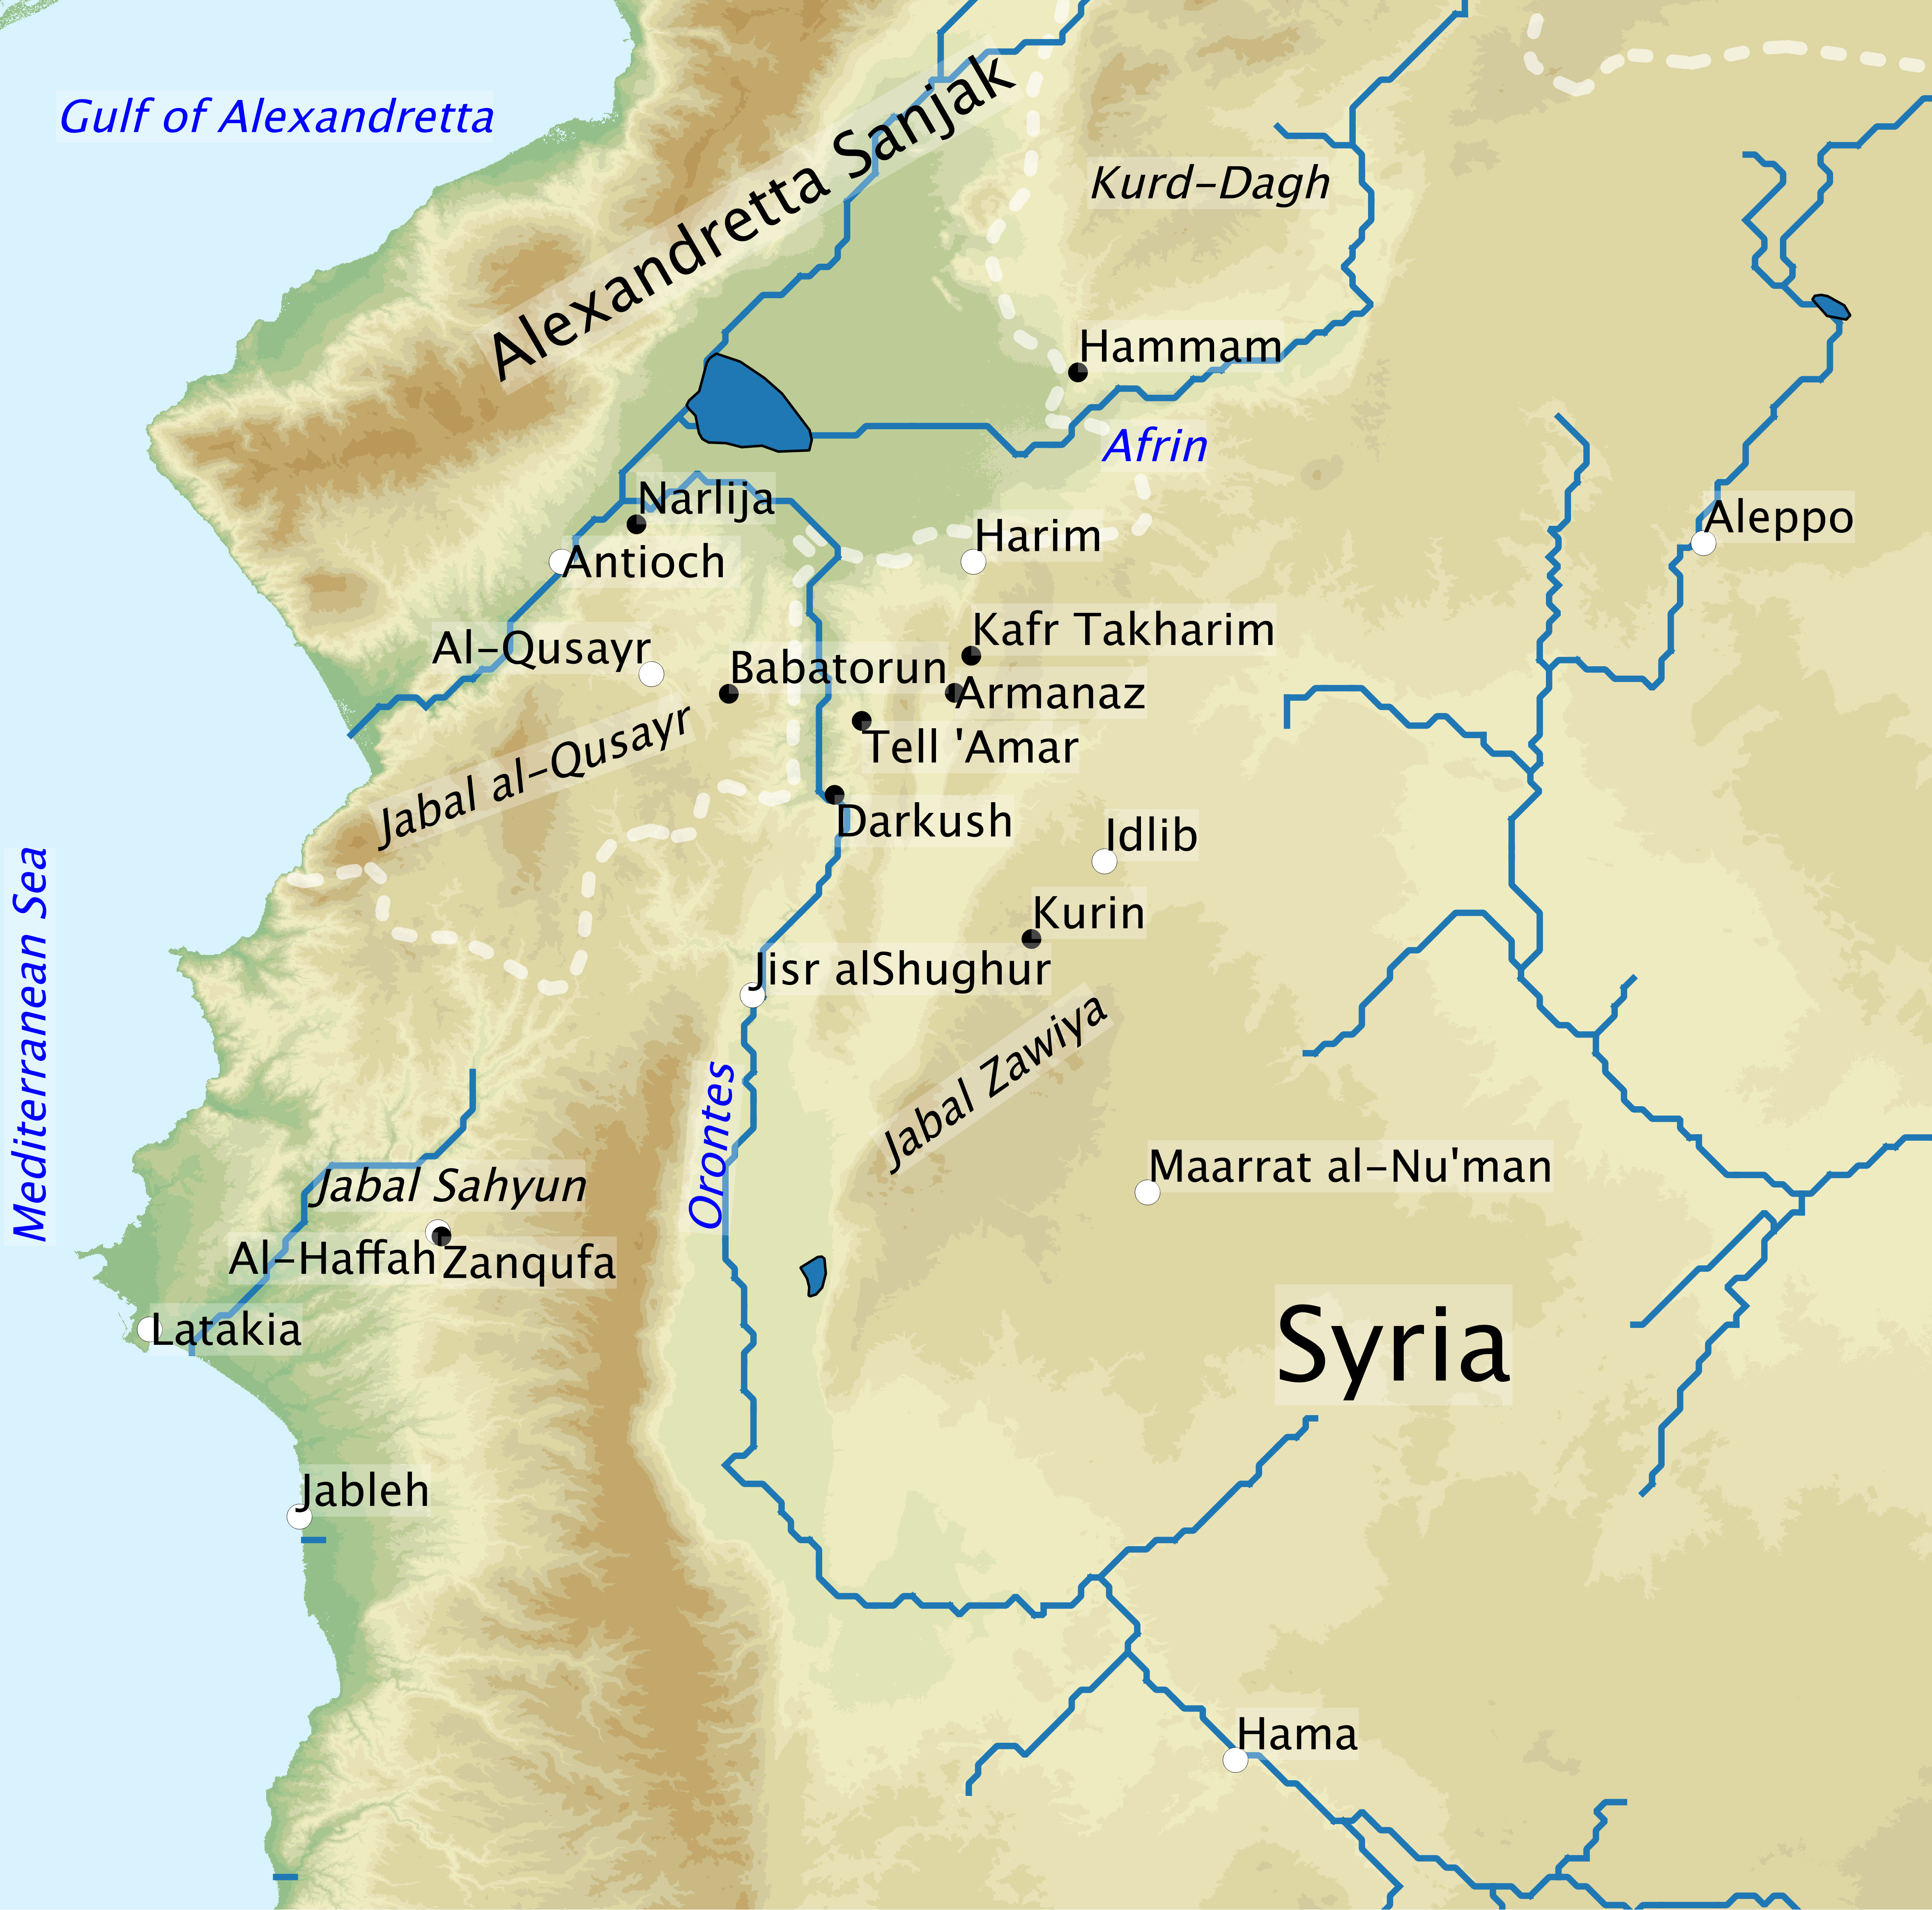 the history of syria history essay The crisis in syria – lesson plan lesson the crisis in syria background, current situation, and activities to engage subject social studies, geography, international studies, world history estimated time one class day (40 minutes) & homework grade level grades 6-8 objectives students will: gain insights on the background of conflict in syria.